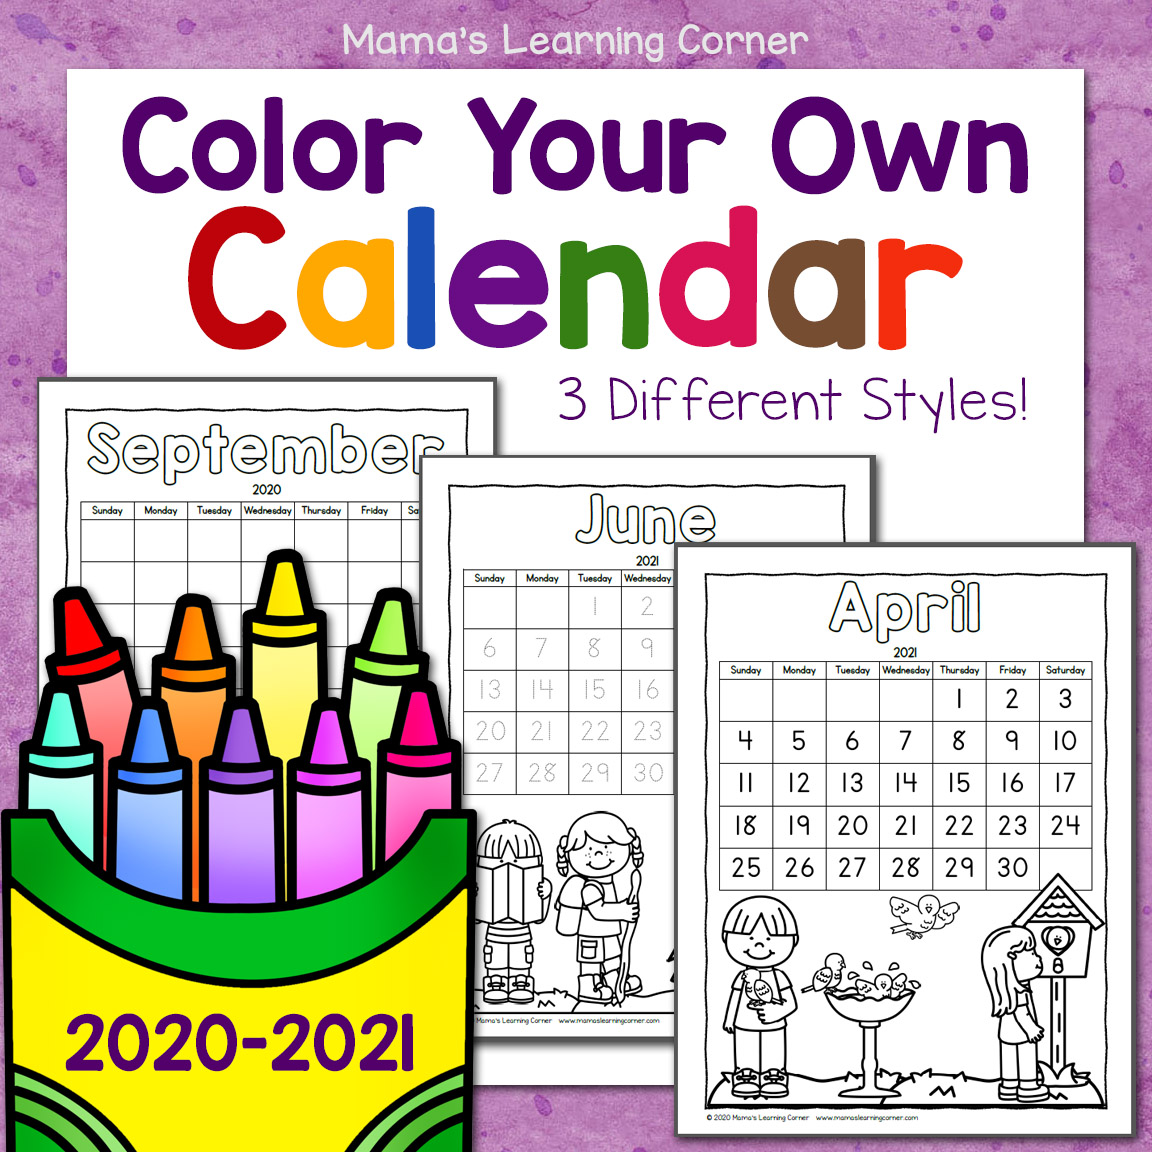 Color Your Own Calendar